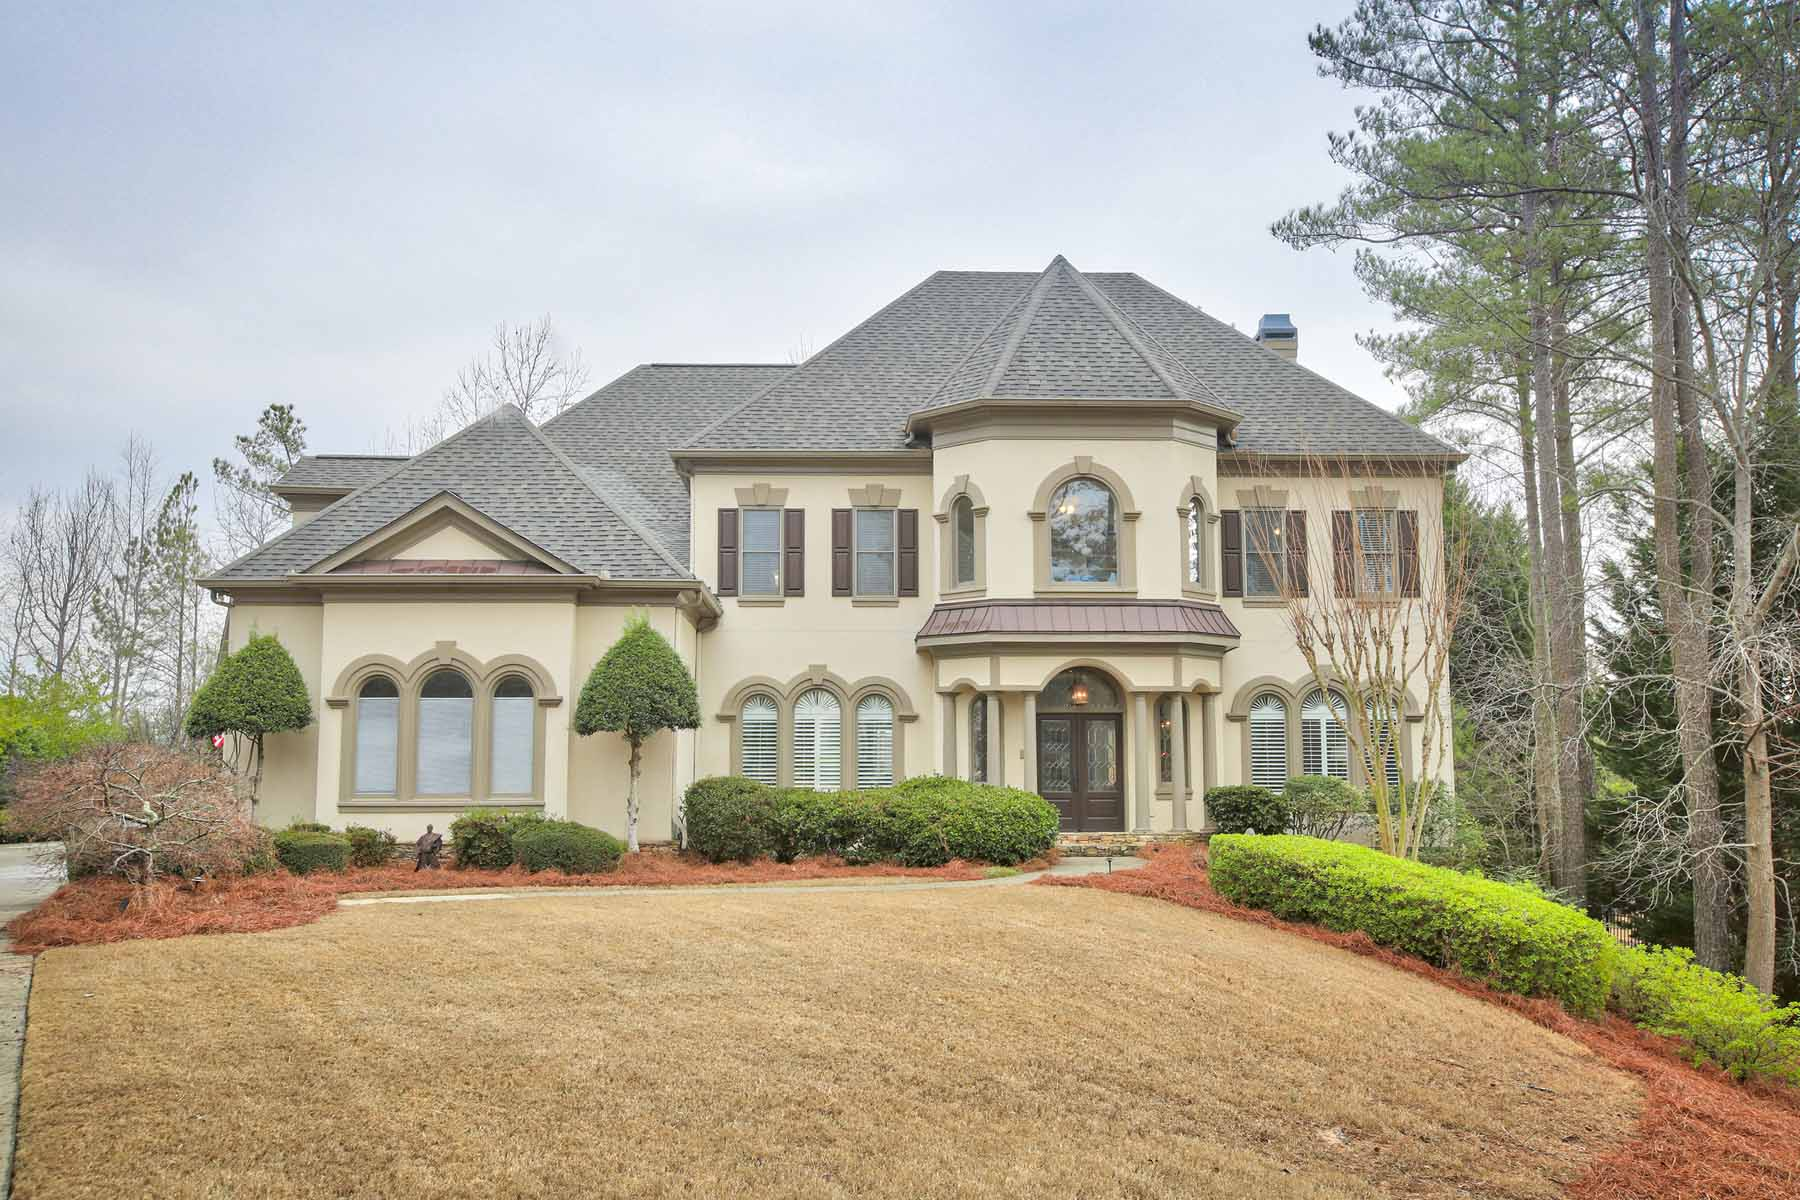 一戸建て のために 売買 アット Magnificent Estate With Beautiful Outdoor Entertaining 1006 Tullamore Place Alpharetta, ジョージア, 30022 アメリカ合衆国